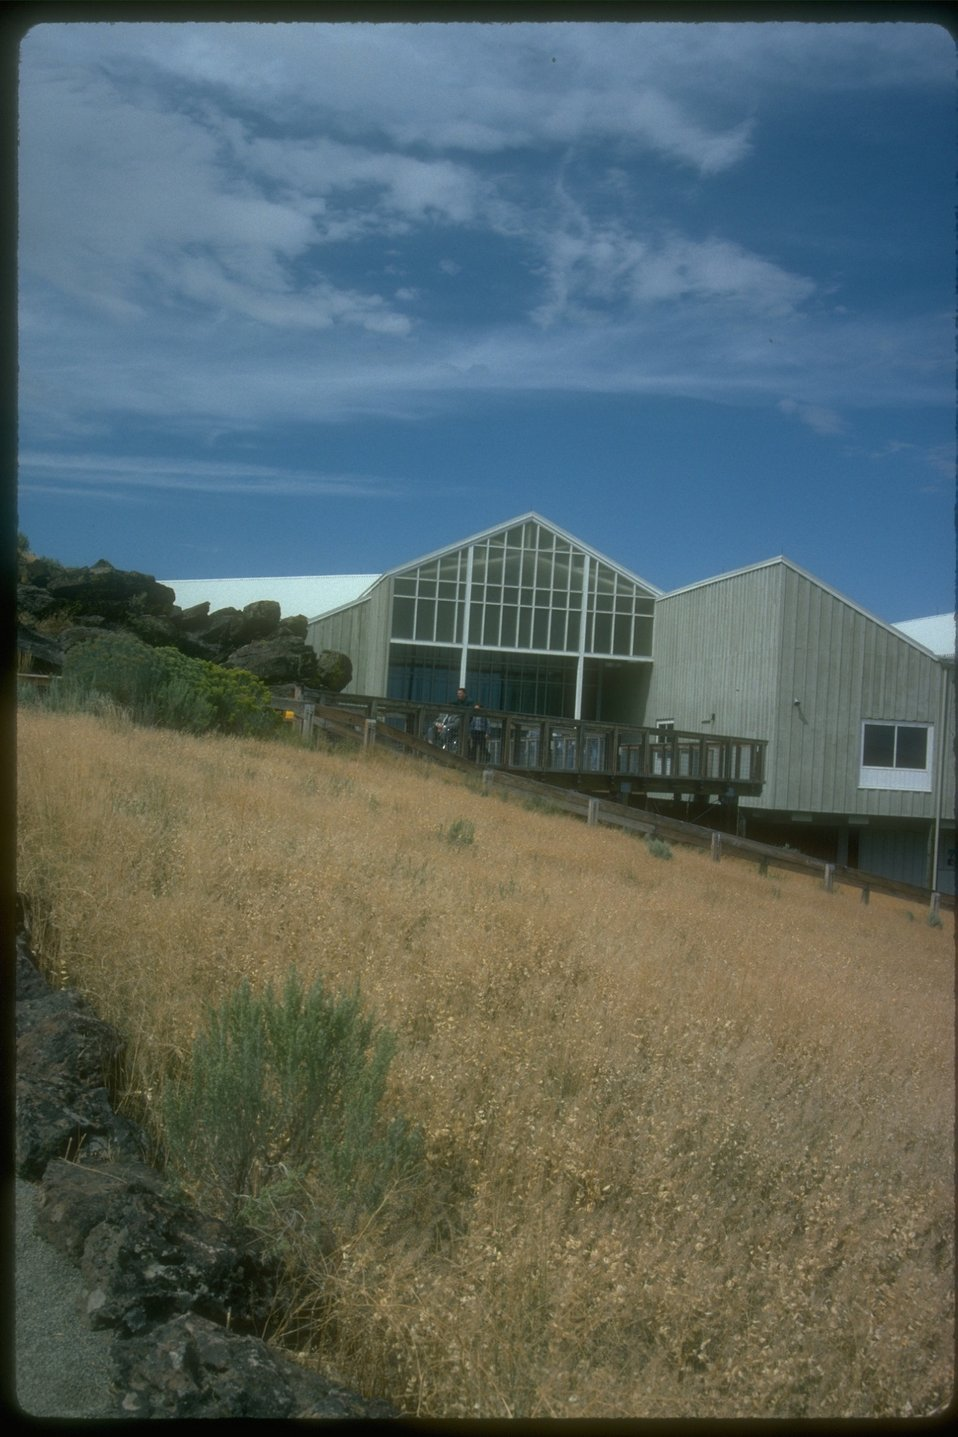 The entrance of the Interpretive Center building from a distance.